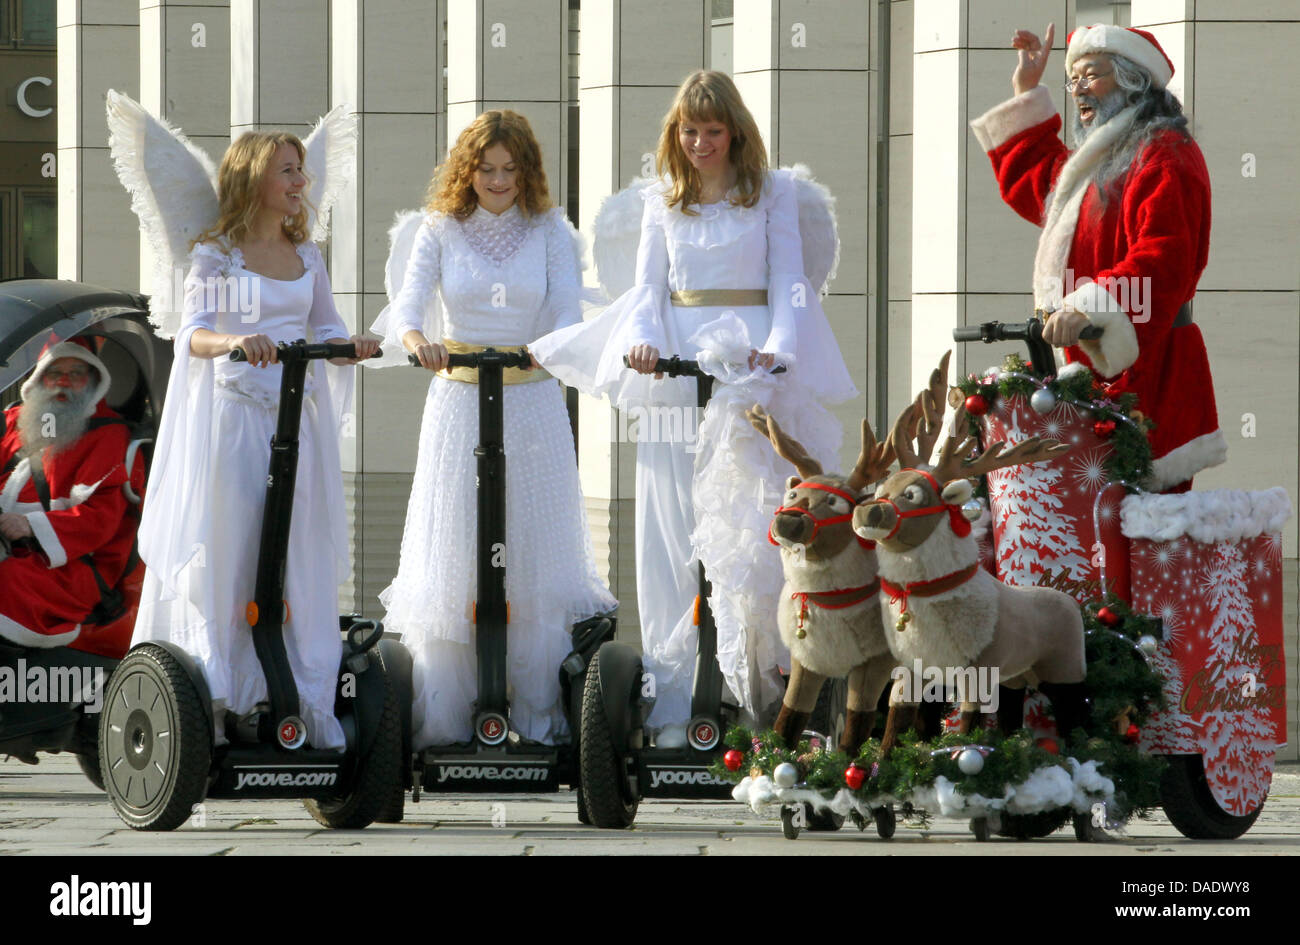 Christmas angels and a santa claus pose on segways in